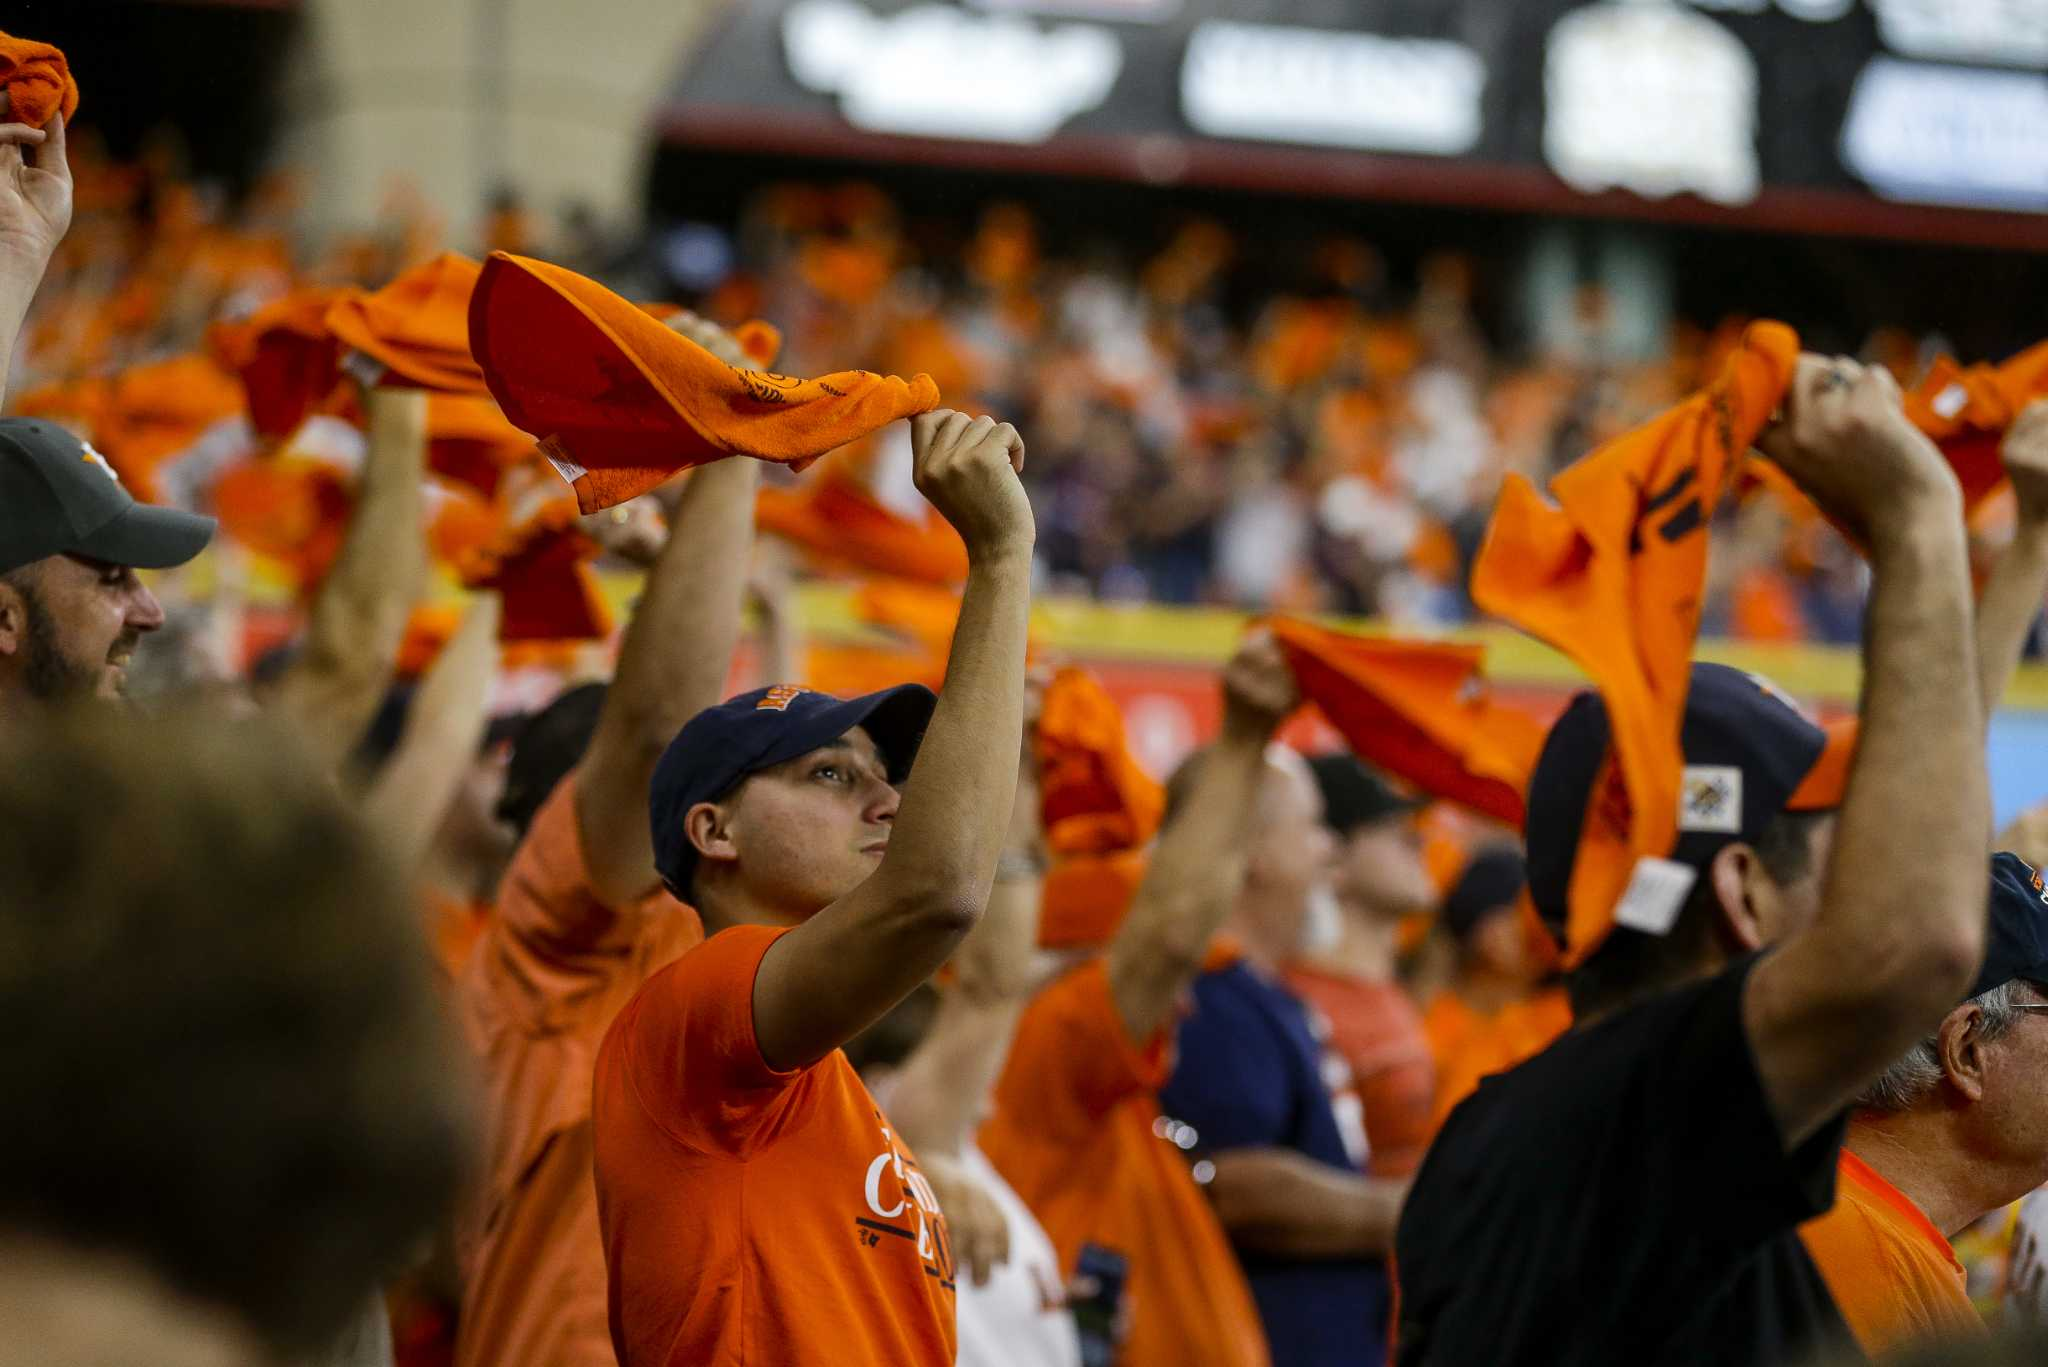 New concessions - including Walkoff Nachos - added to Astros' World Series menu